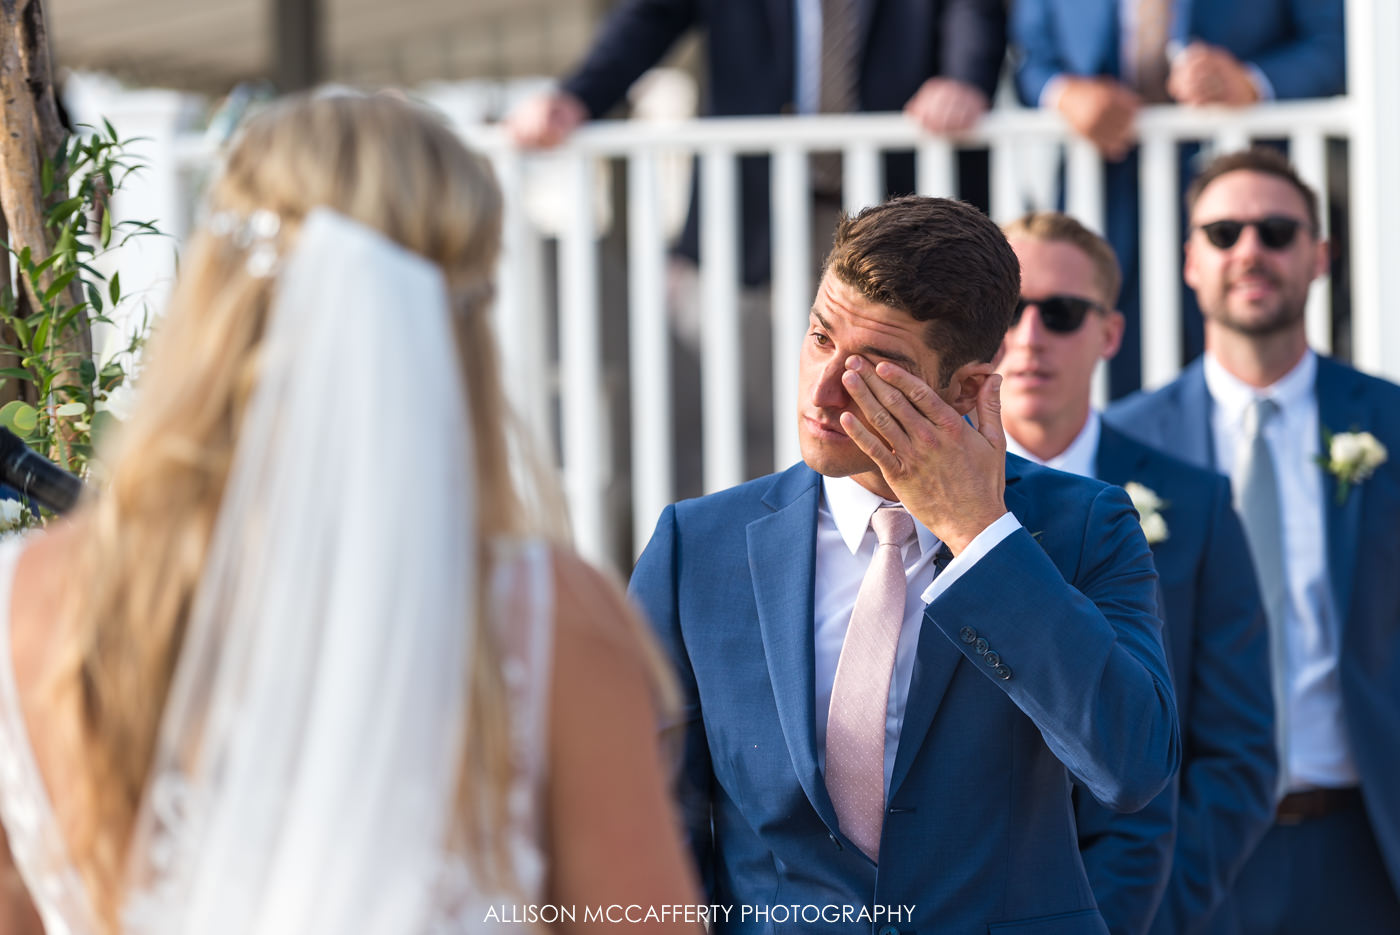 Groom crying during wedding ceremony at Brant Beach Yacht Club